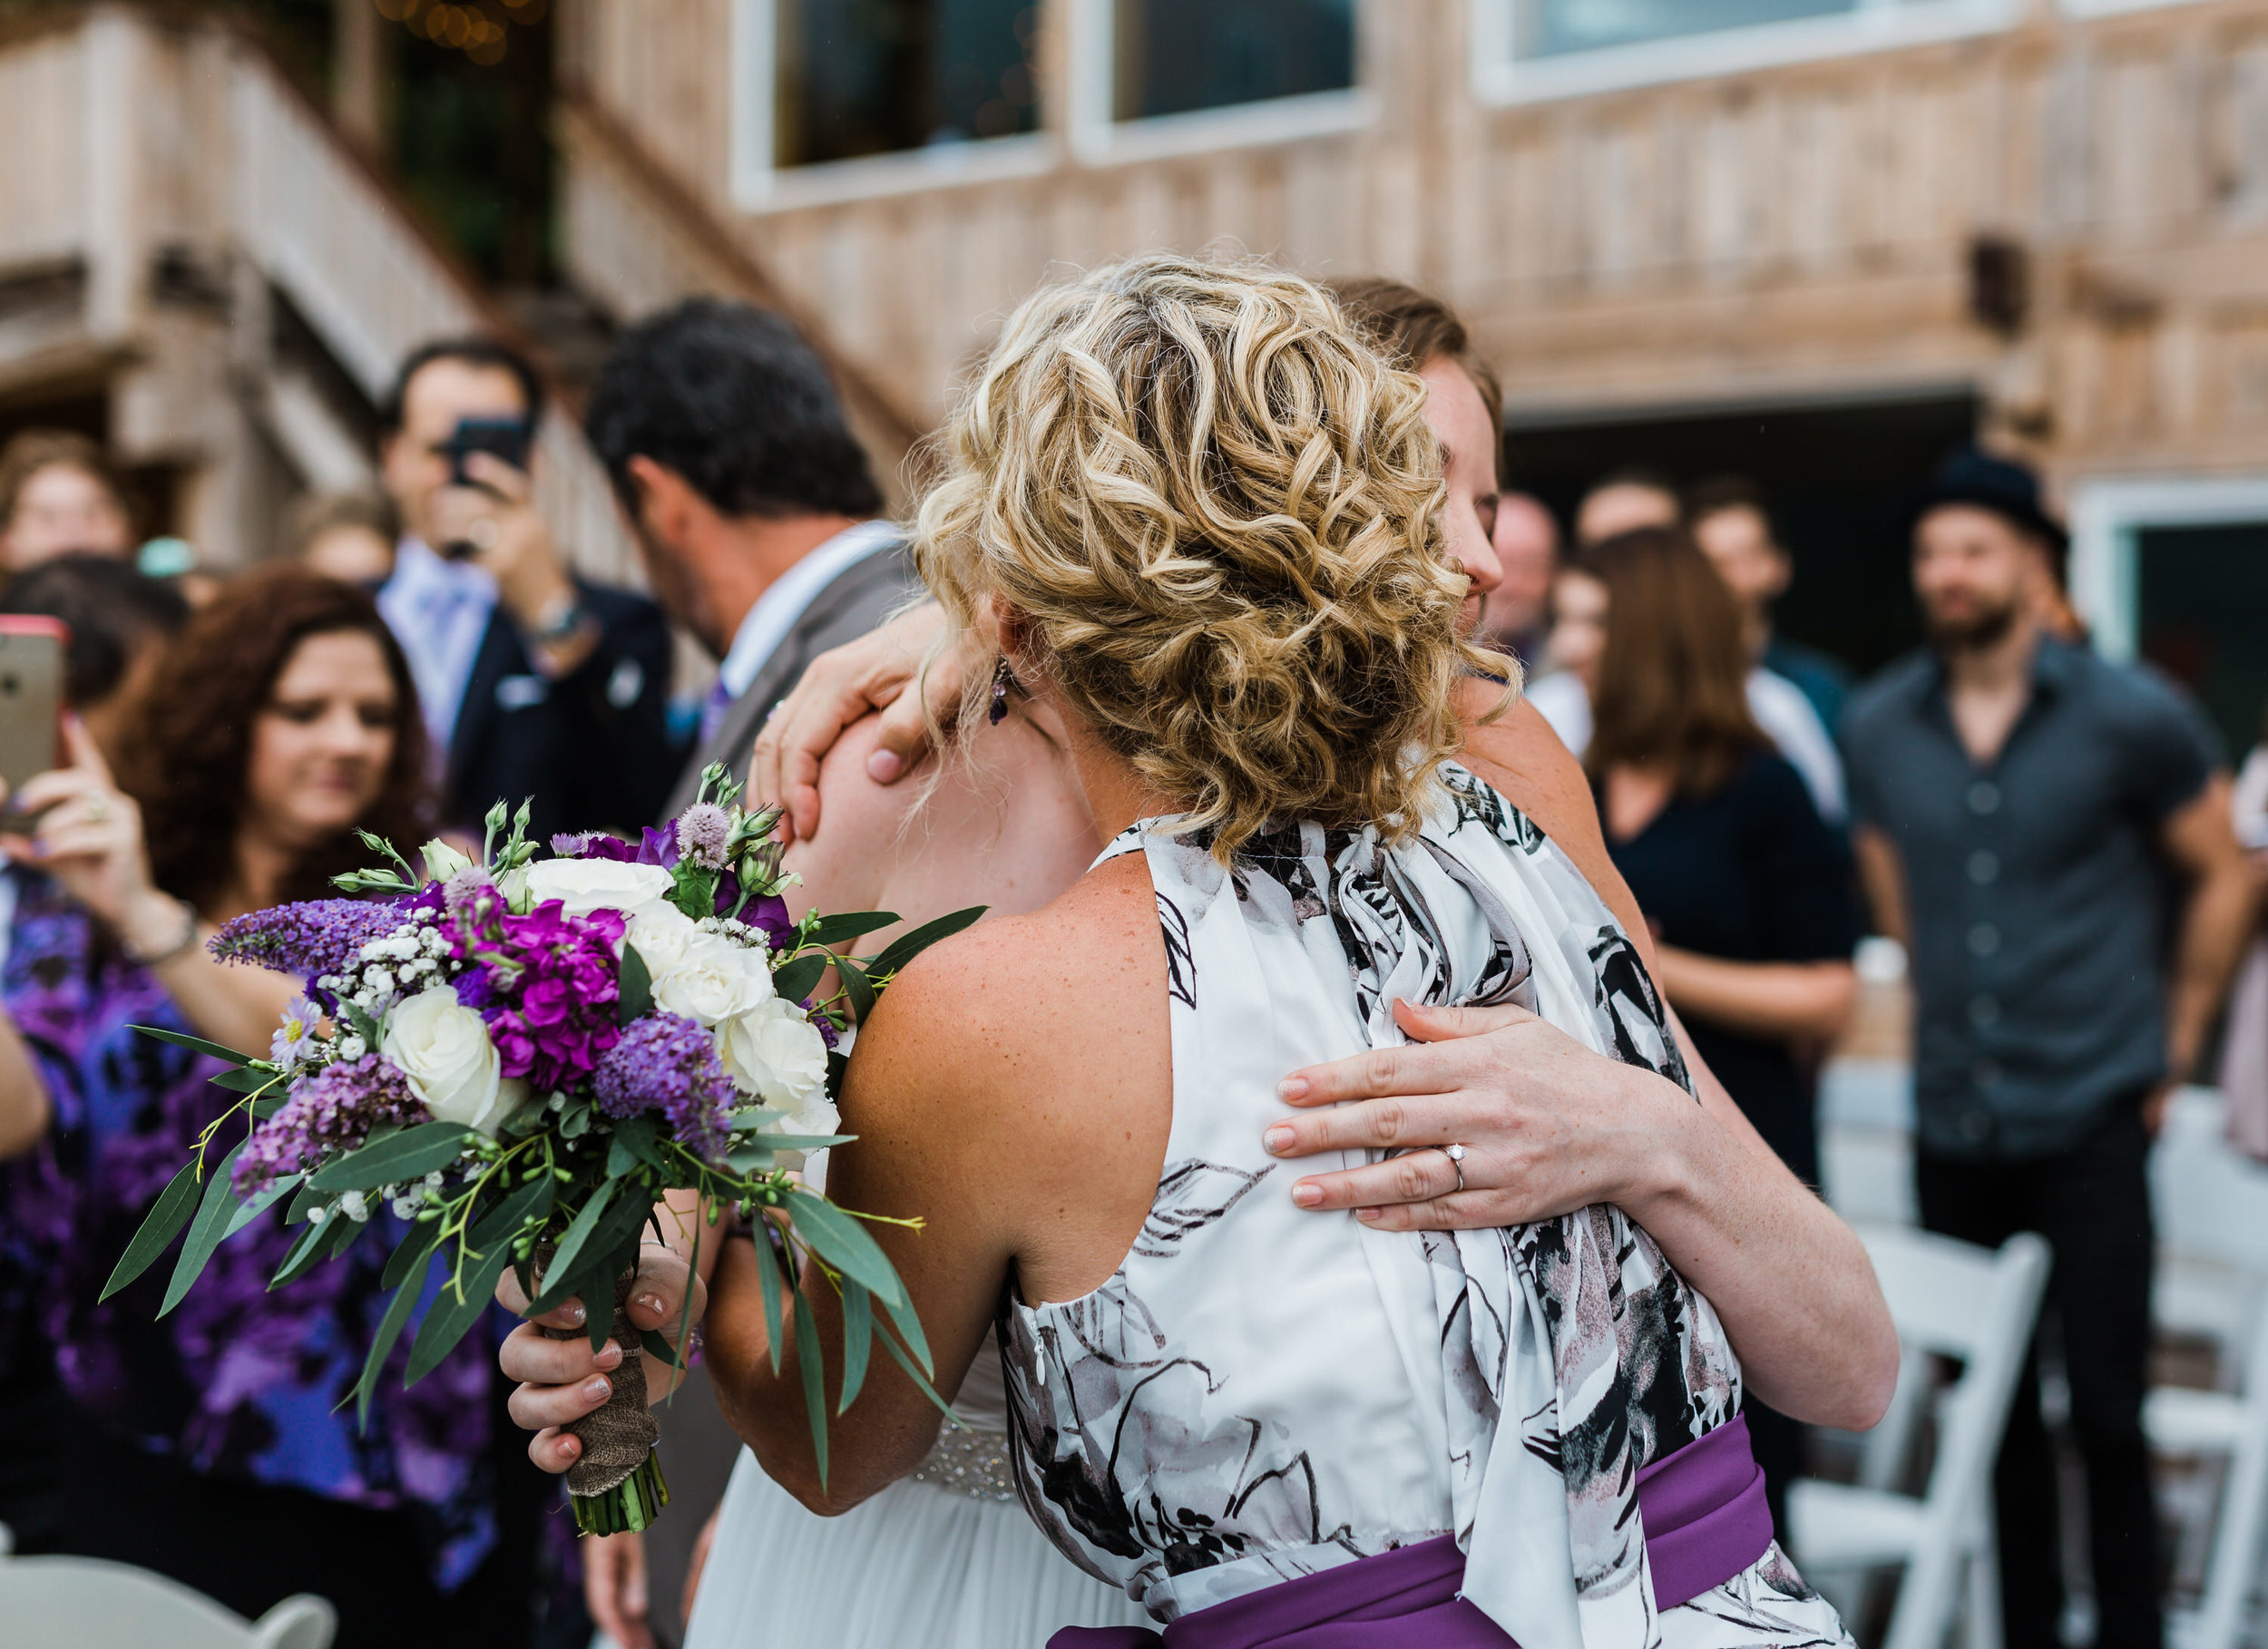 West Coast Wilderness Lodge Wedding Photos - Vancouver Wedding Photographer & Videographer - Sunshine Coast Wedding Photos - Sunshine Coast Wedding Photographer - Jennifer Picard Photography - IMG_4647.jpg